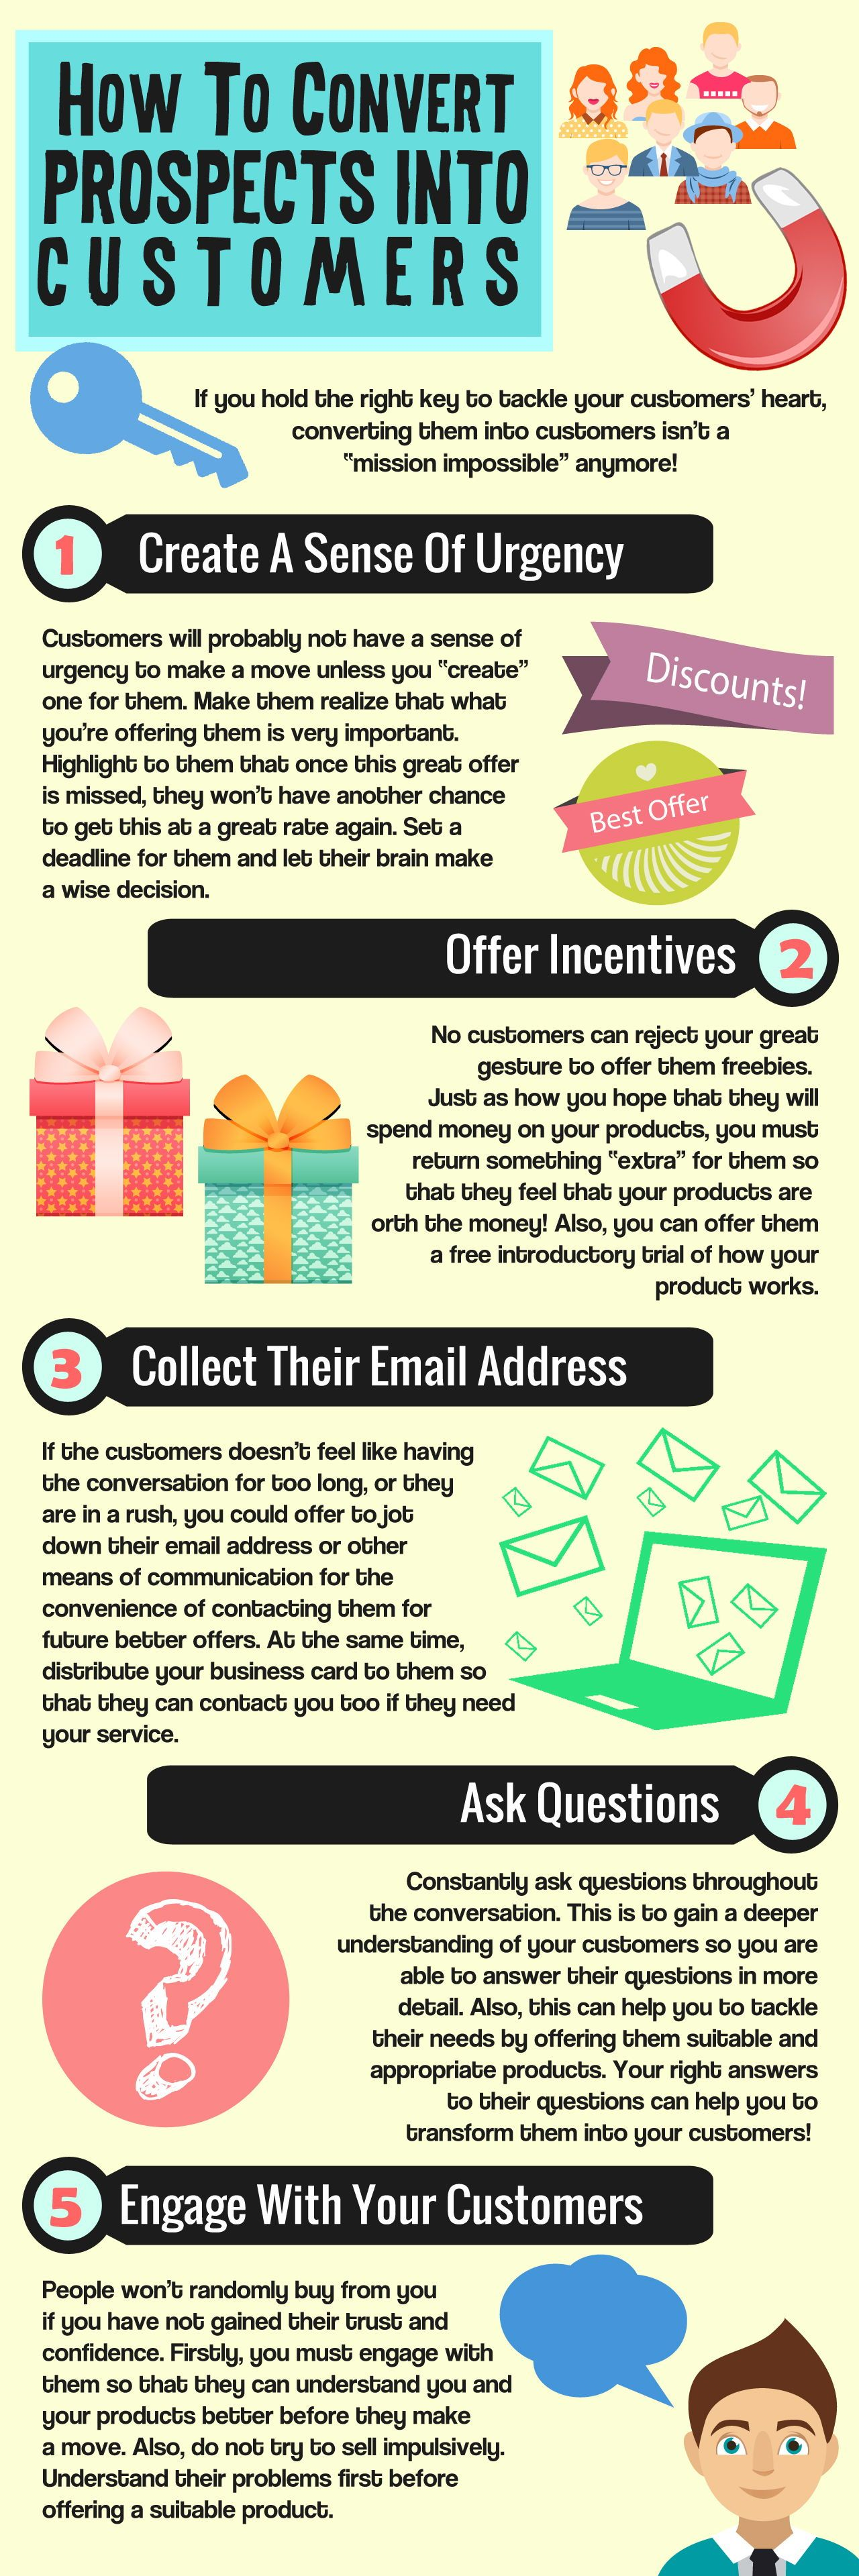 How to convert prospects into customers infographic